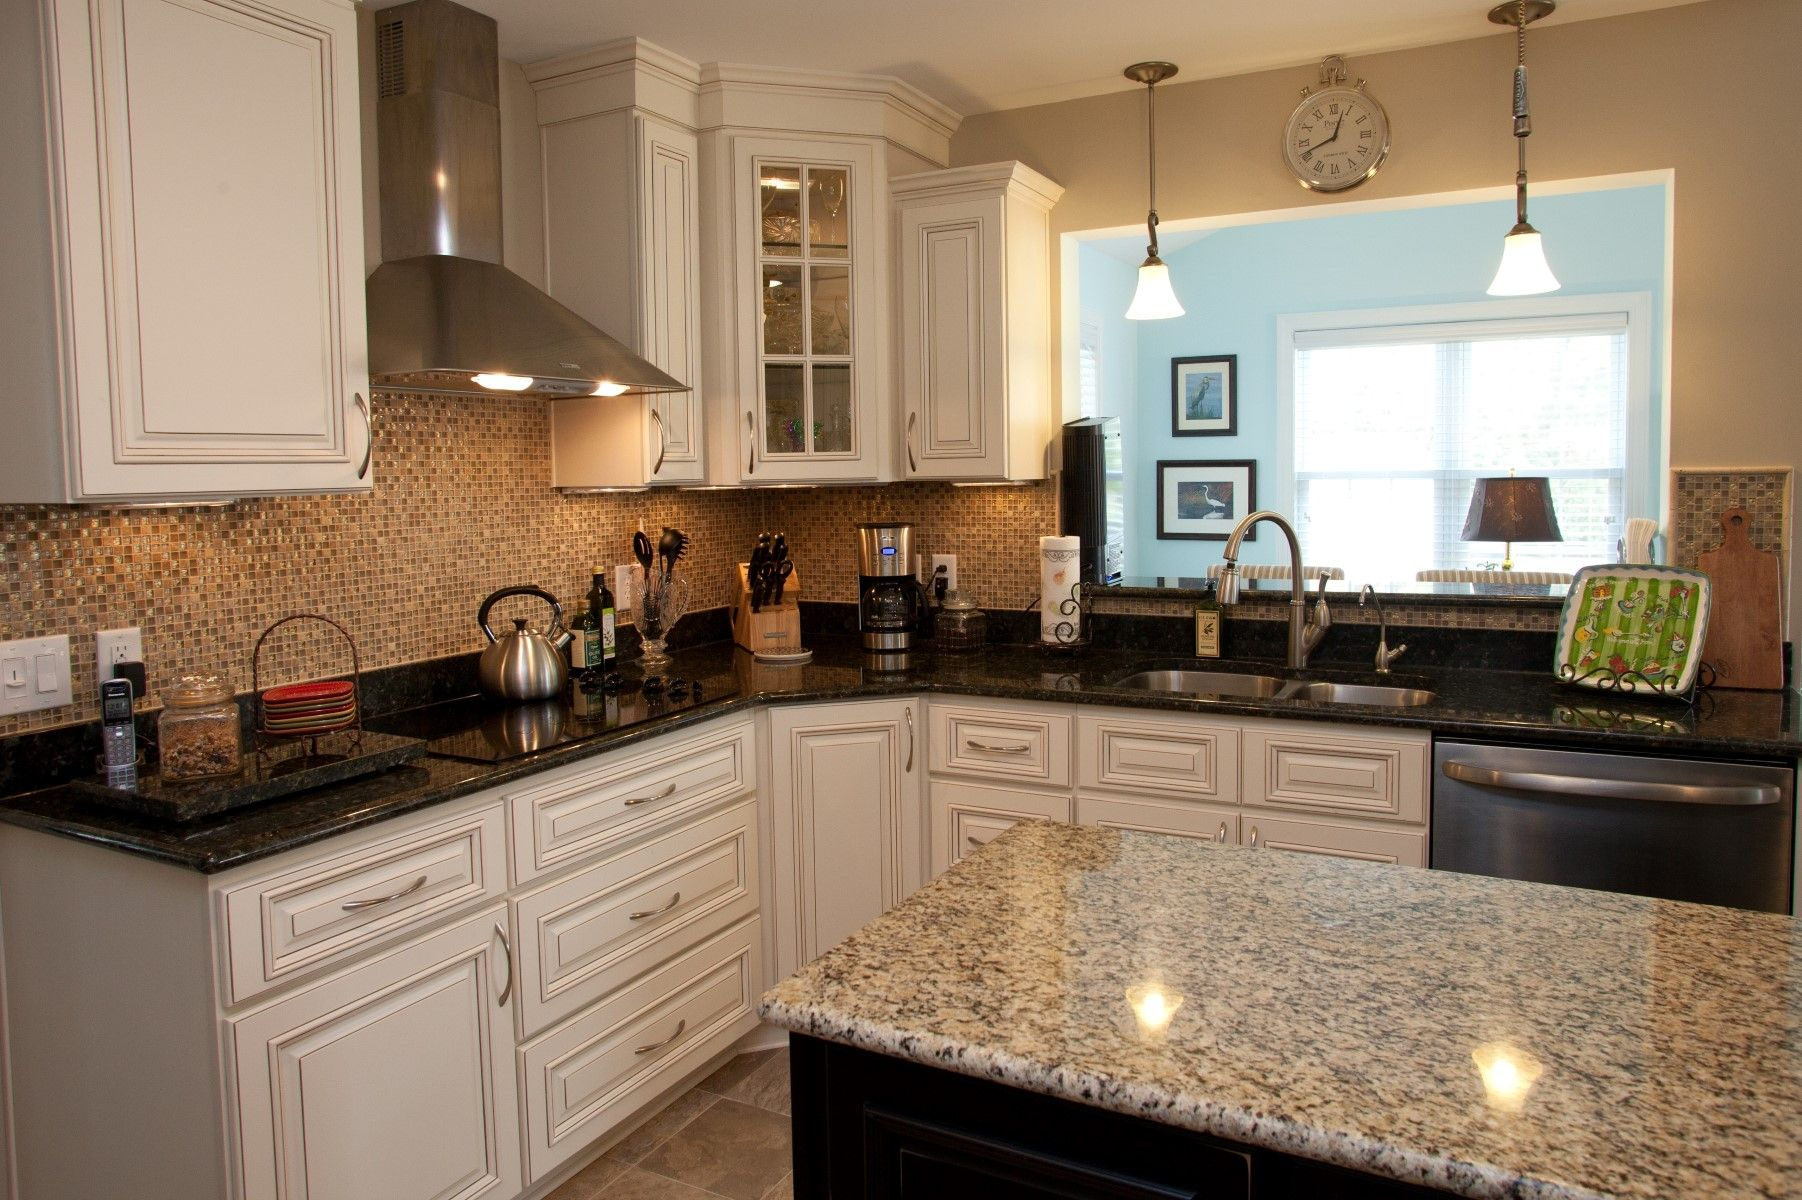 kitchen countertop stone options best water filter system decorating your granite island images white